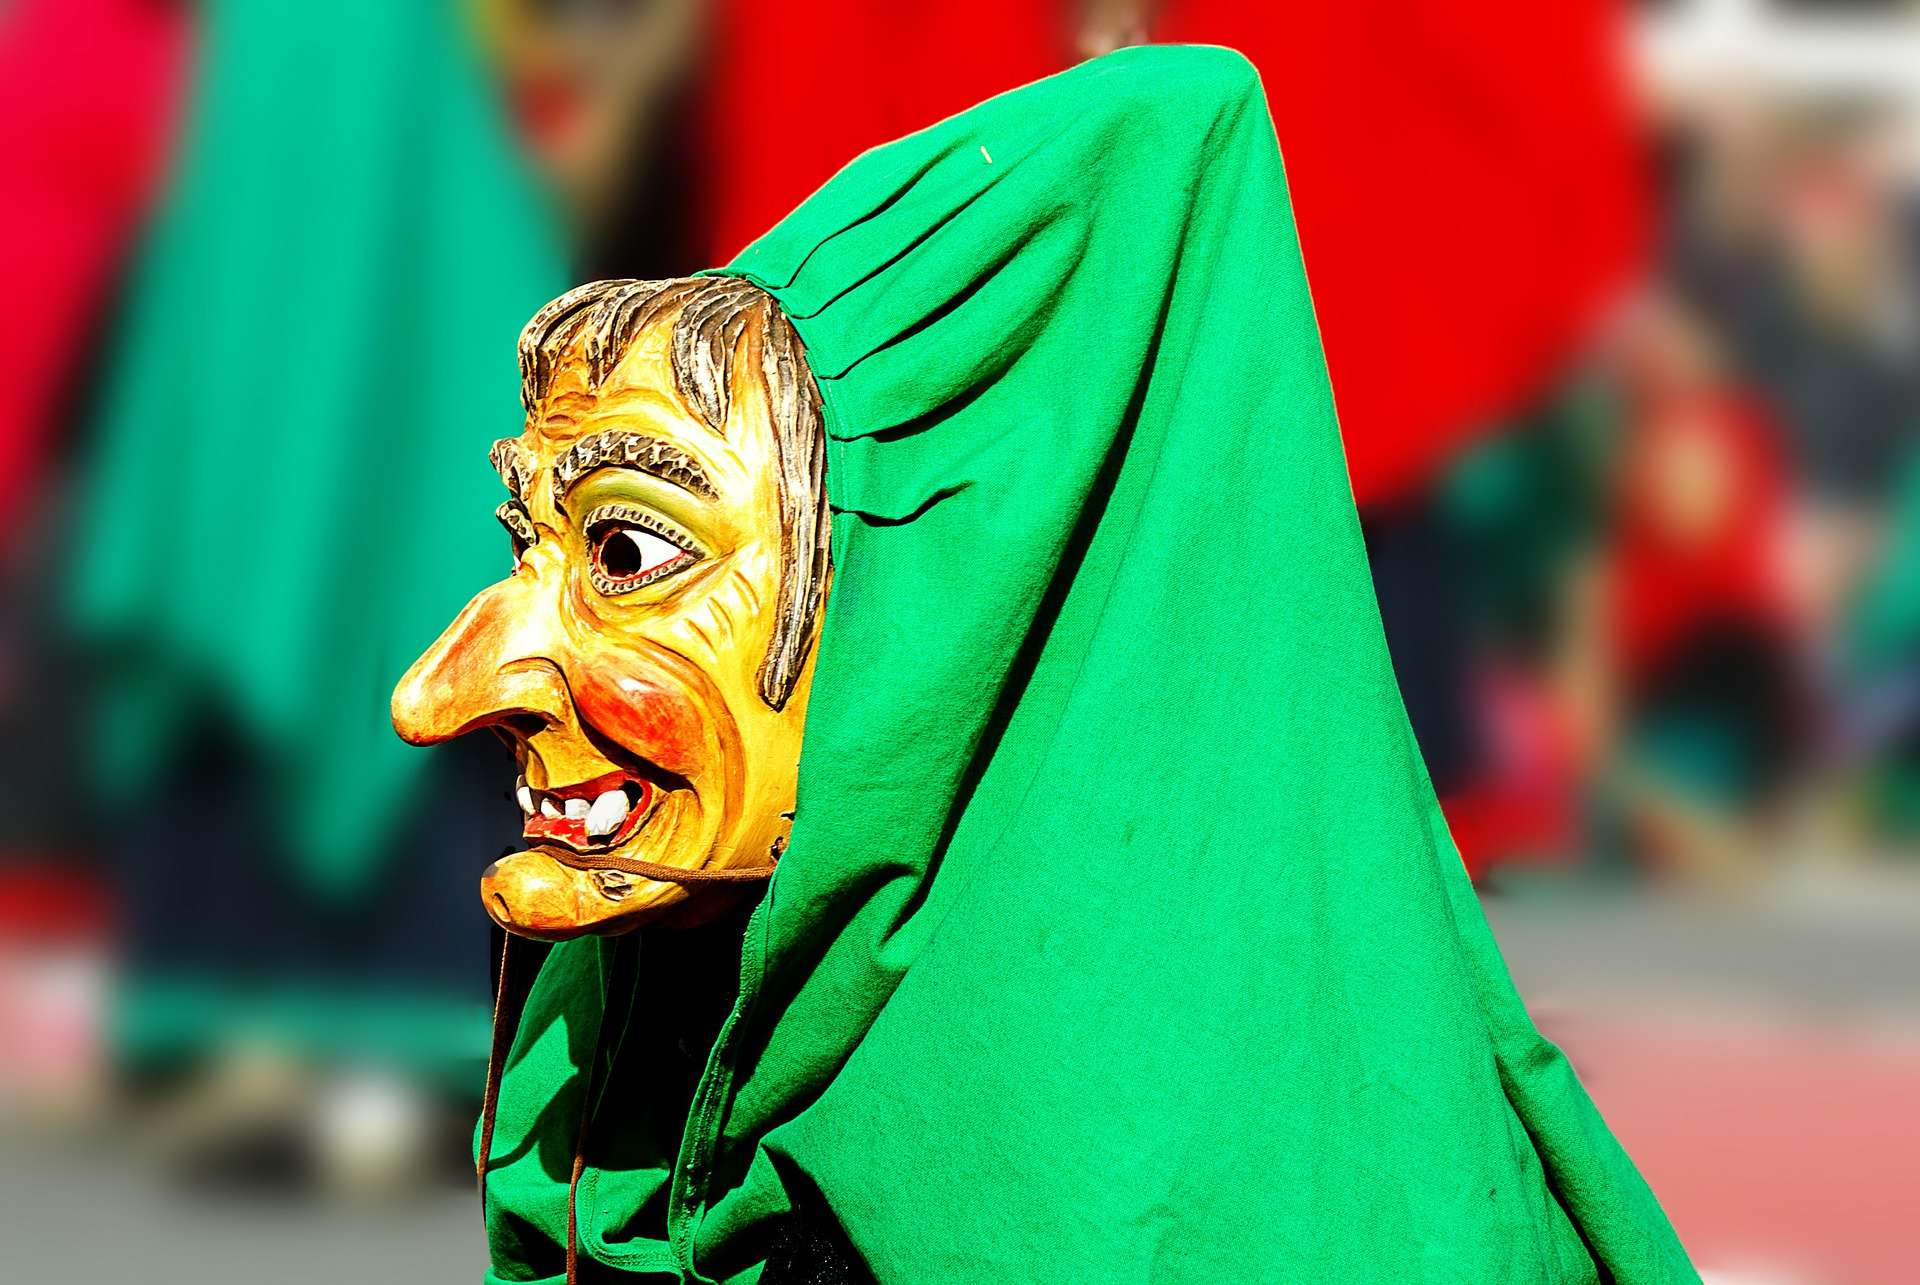 5 European Christmas Characters You Might Not Know